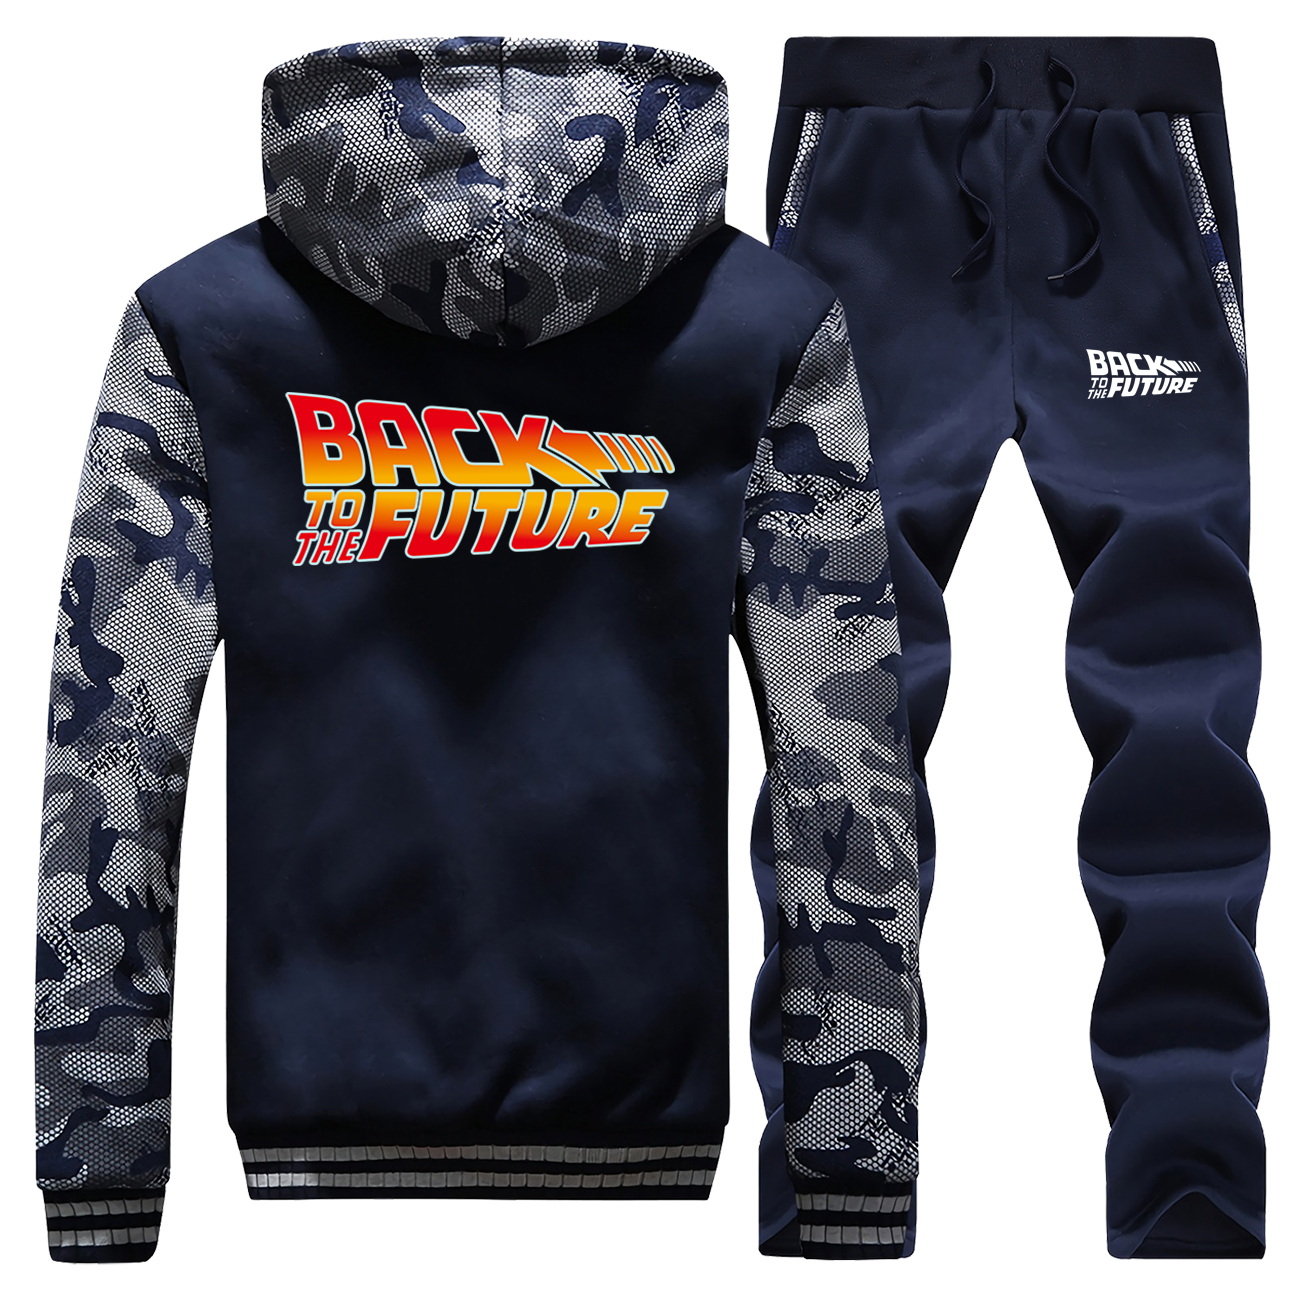 Fashion Back To The Future Camo Sweatshirt Hoodies Pant Sets Men Series Back To The Future Movie Tracksuit Sportswear Sweatpants